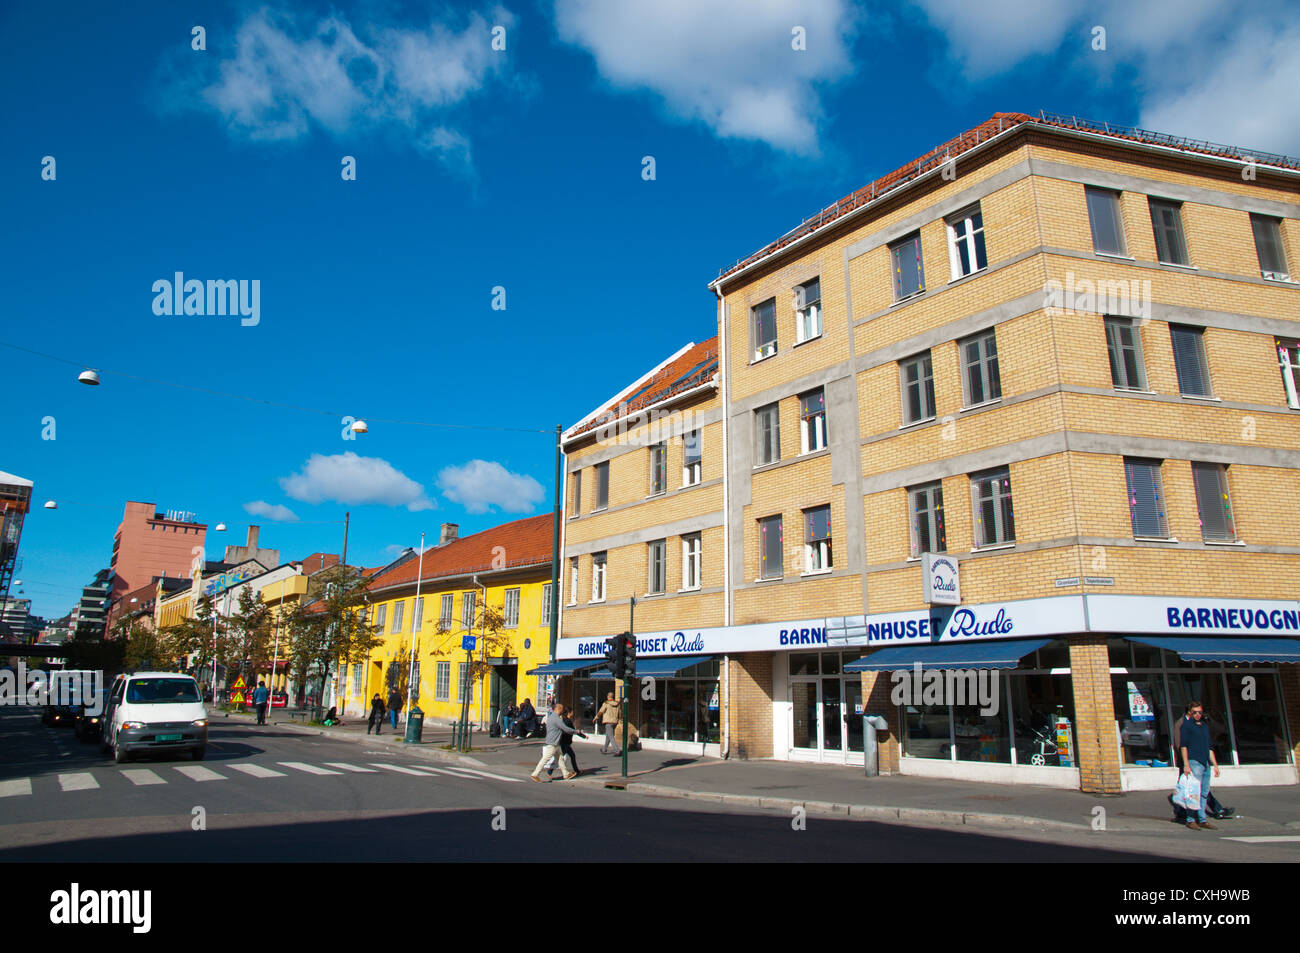 Street scene along Gronland street Gronland district central Oslo Norway Europe - Stock Image